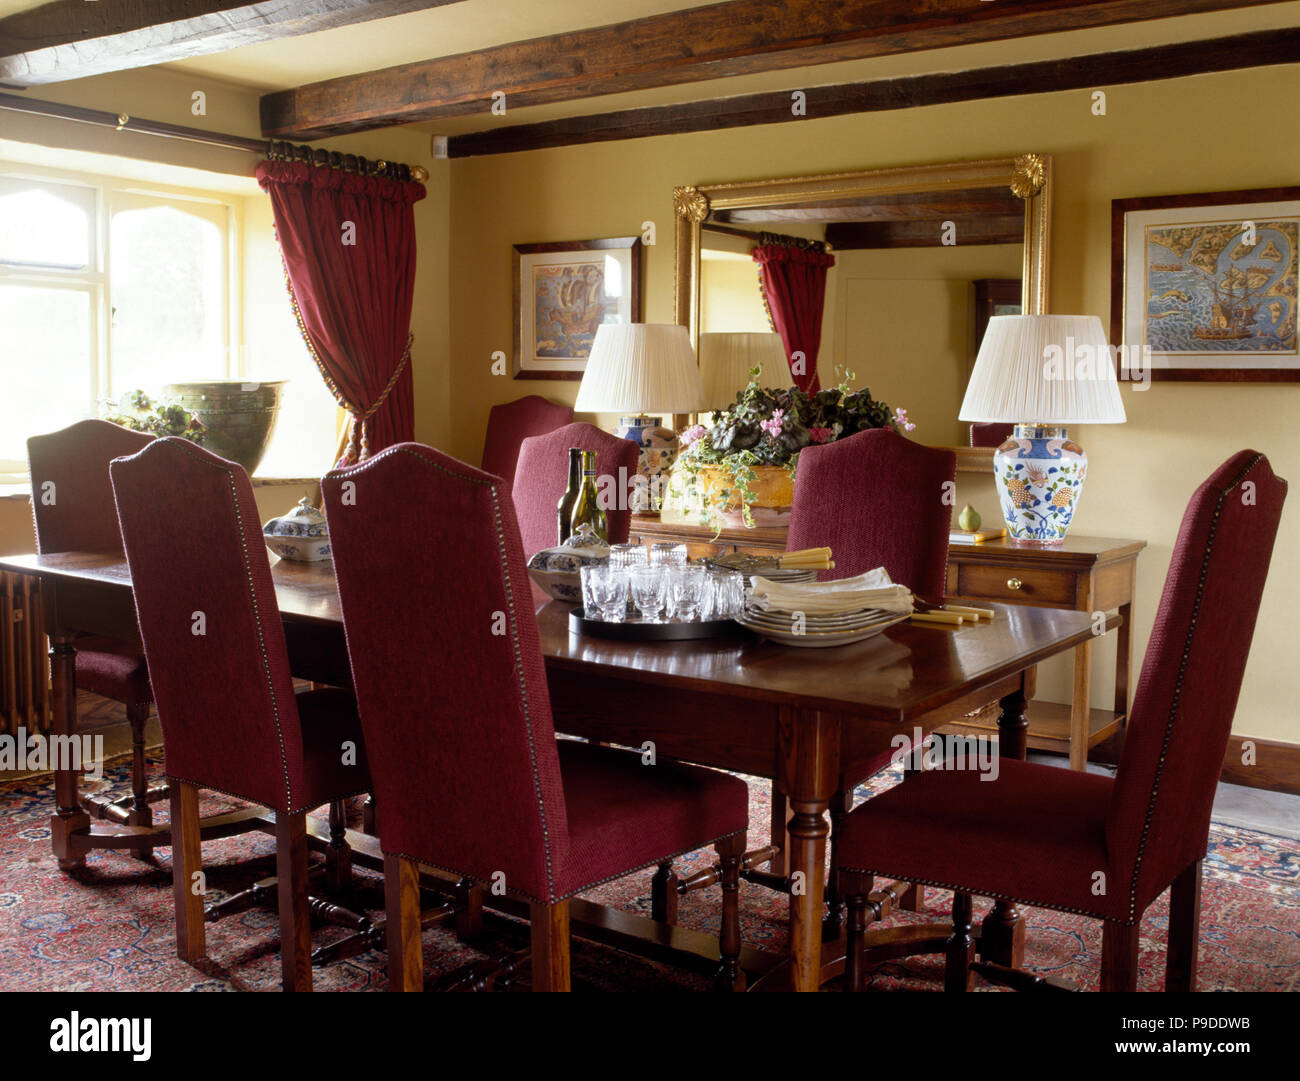 Dark red upholstered chairs at table in pale yellow cottage dining room Stock Photo